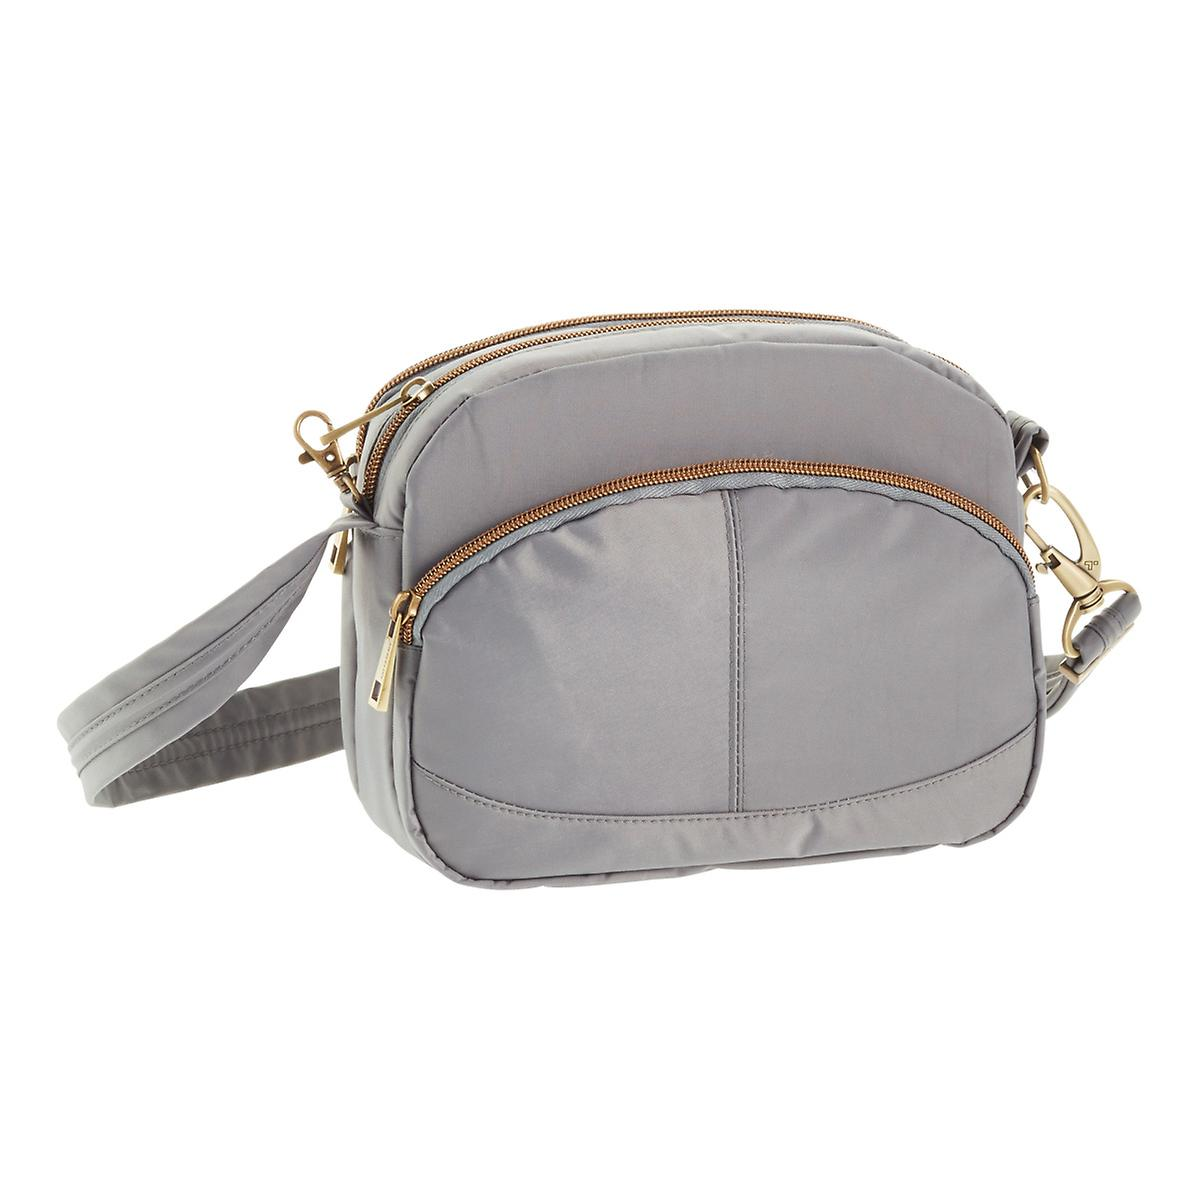 Travel Wallets Rfid Blockers Anti Theft Bags The Container Store Pouch Wiring Diagram Travelon Small Grey Signature Shoulder Bag